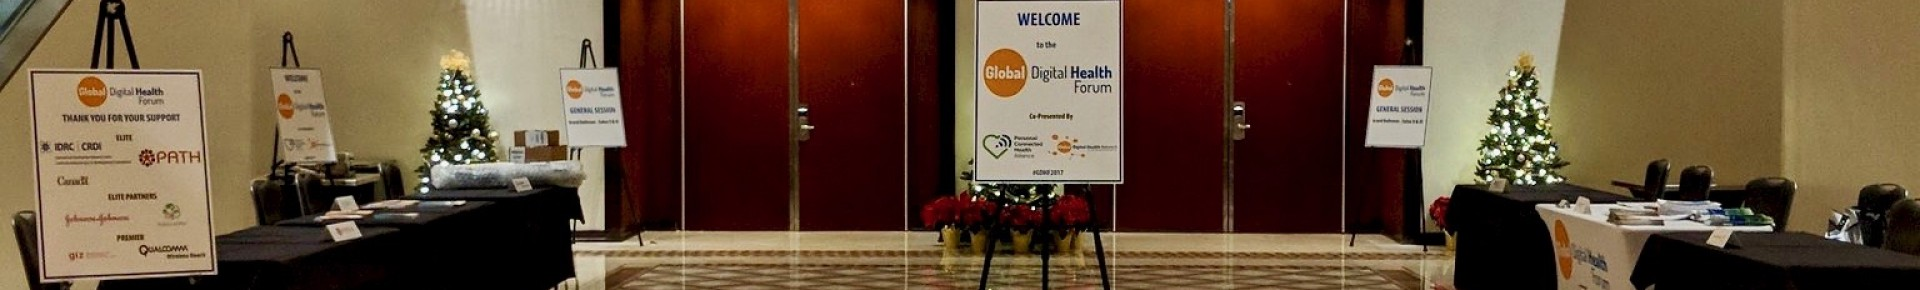 Digital health and UHC – together towards SDG 3!